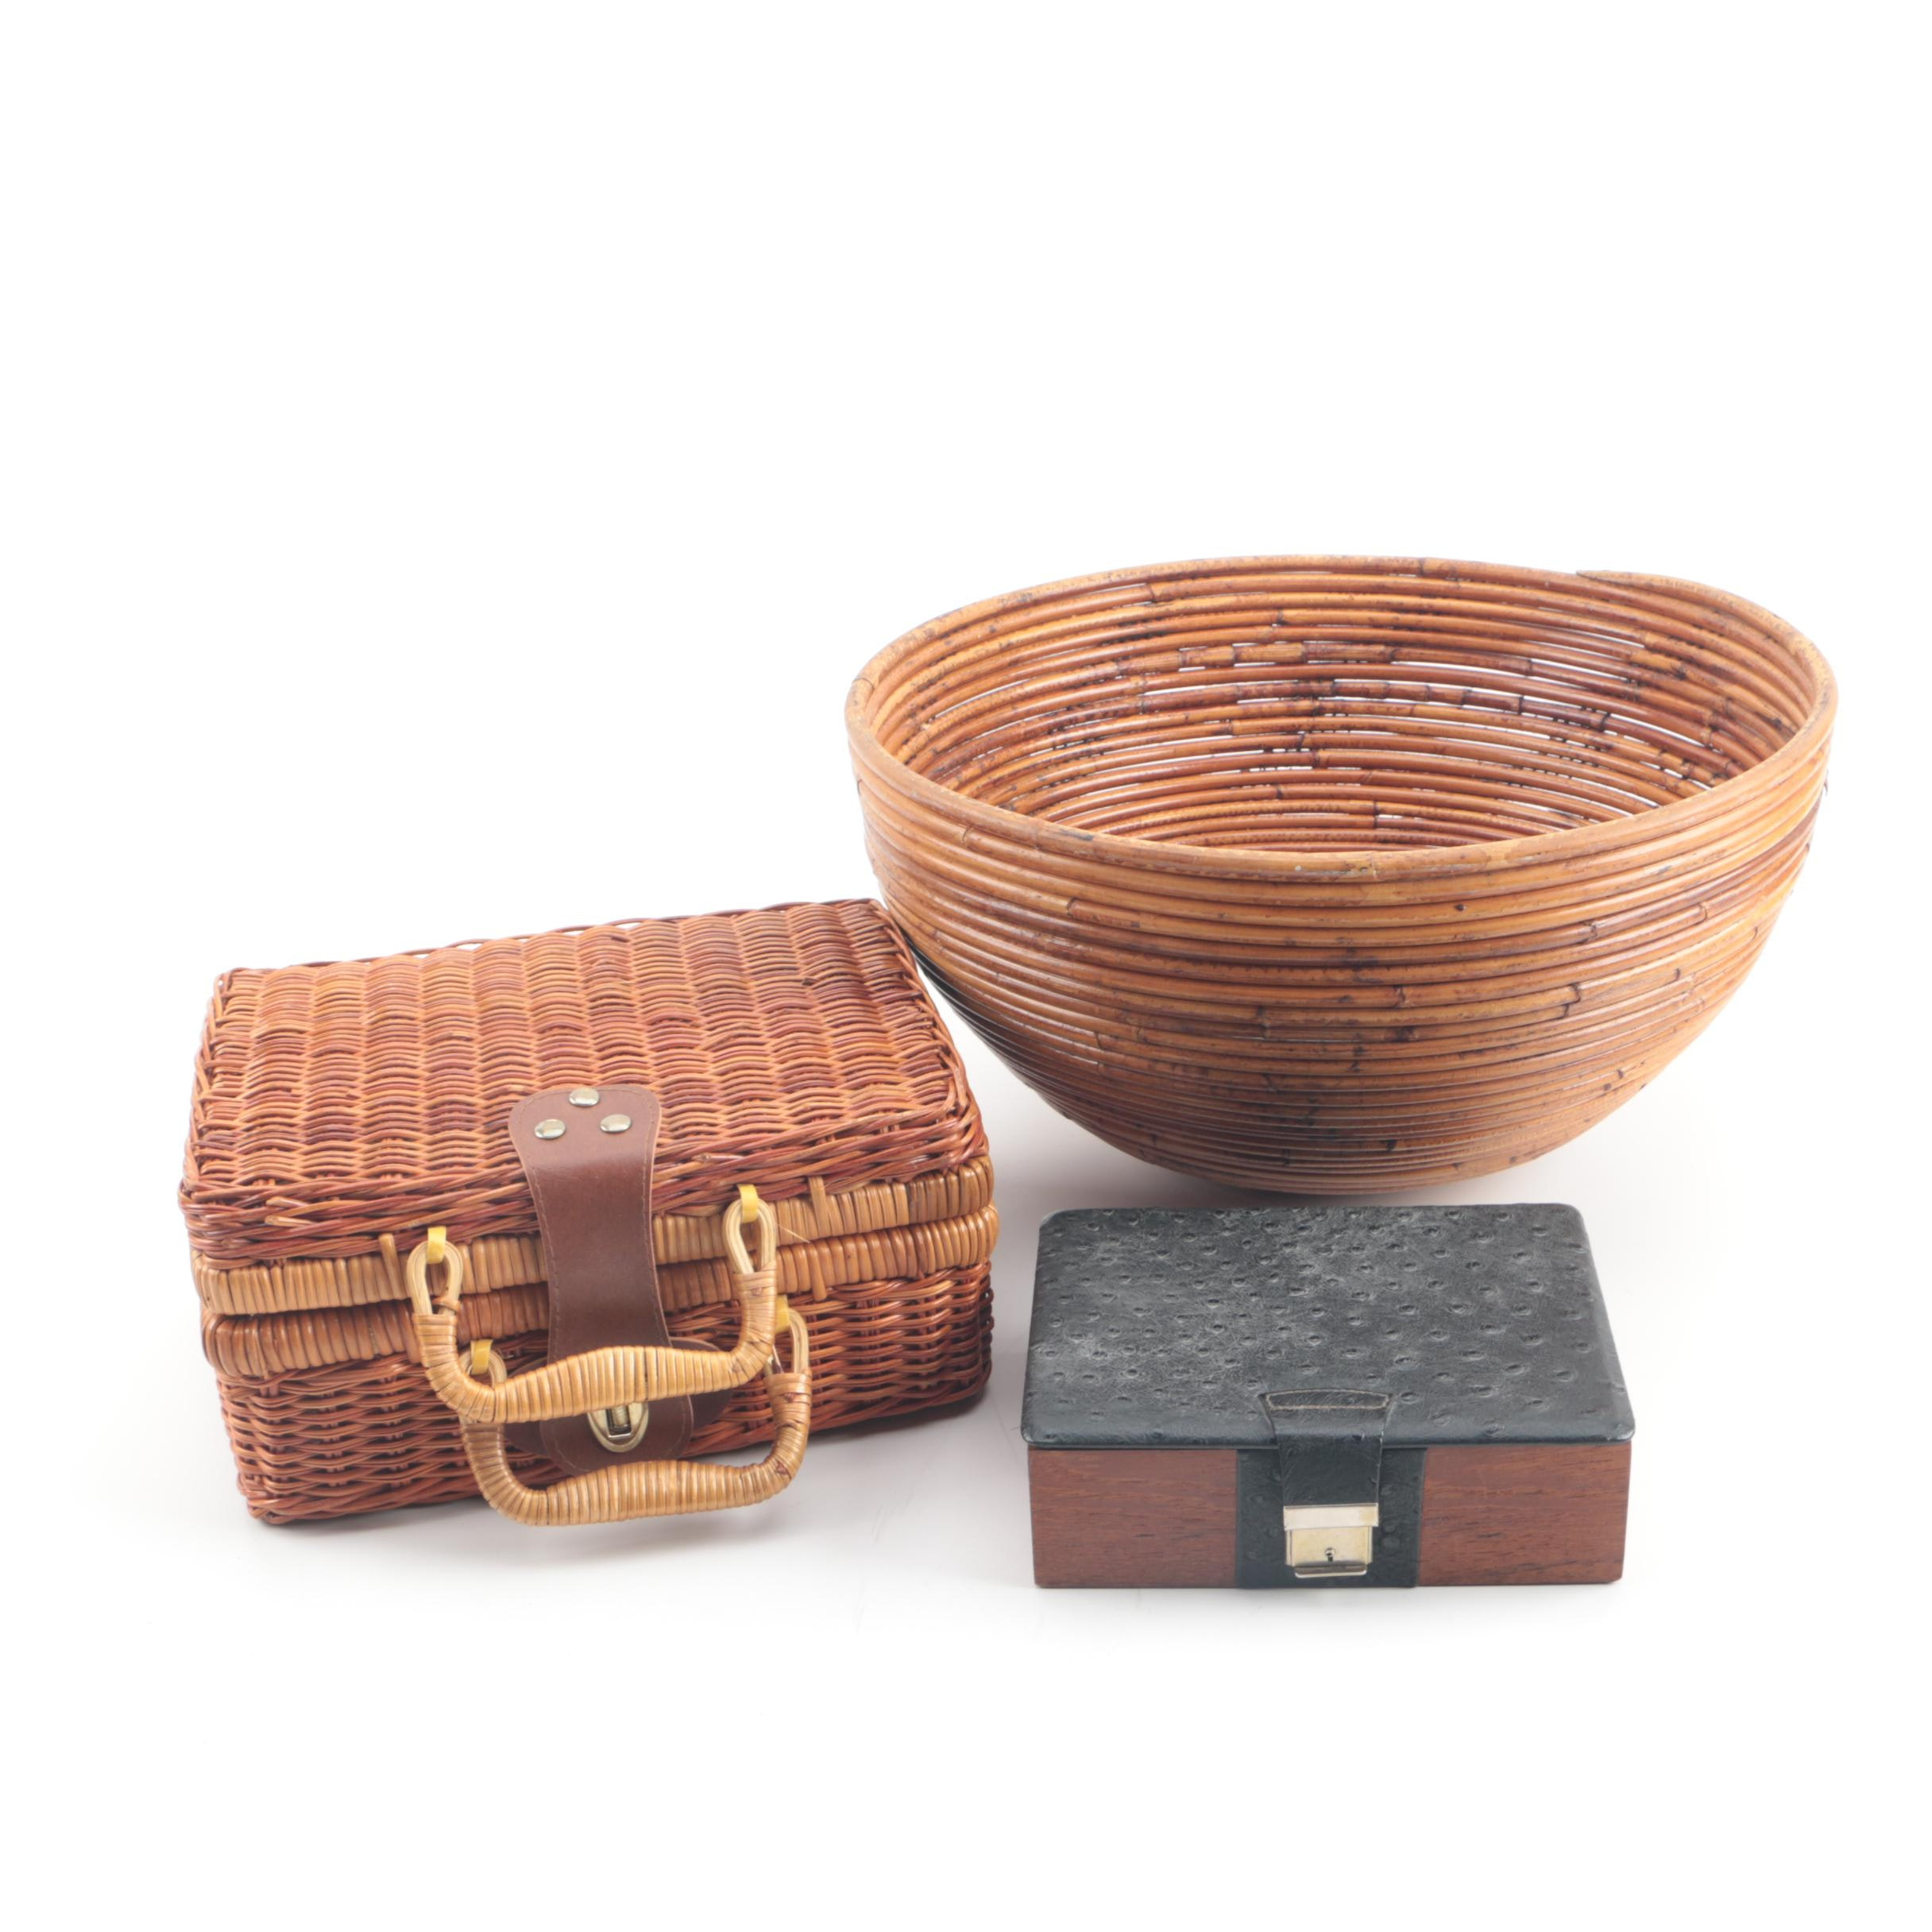 """Schylling """"Madeline"""" Picnic Basket with Tea Set and Handmade Bamboo Bowl"""